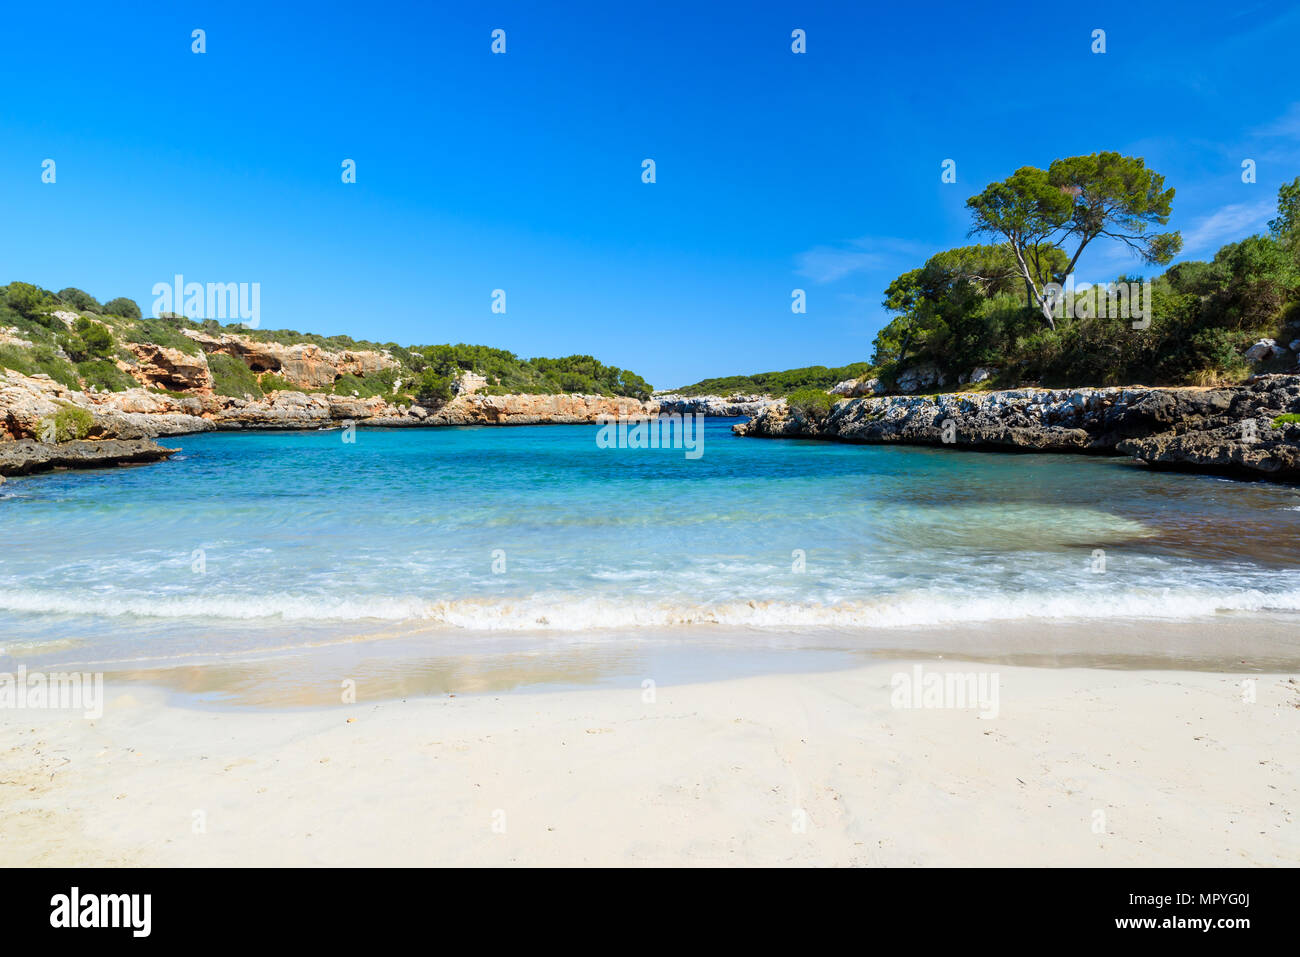 Cala Sa Nau - beautiful bay and beach on Mallorca, Spain - Europe Stock Photo